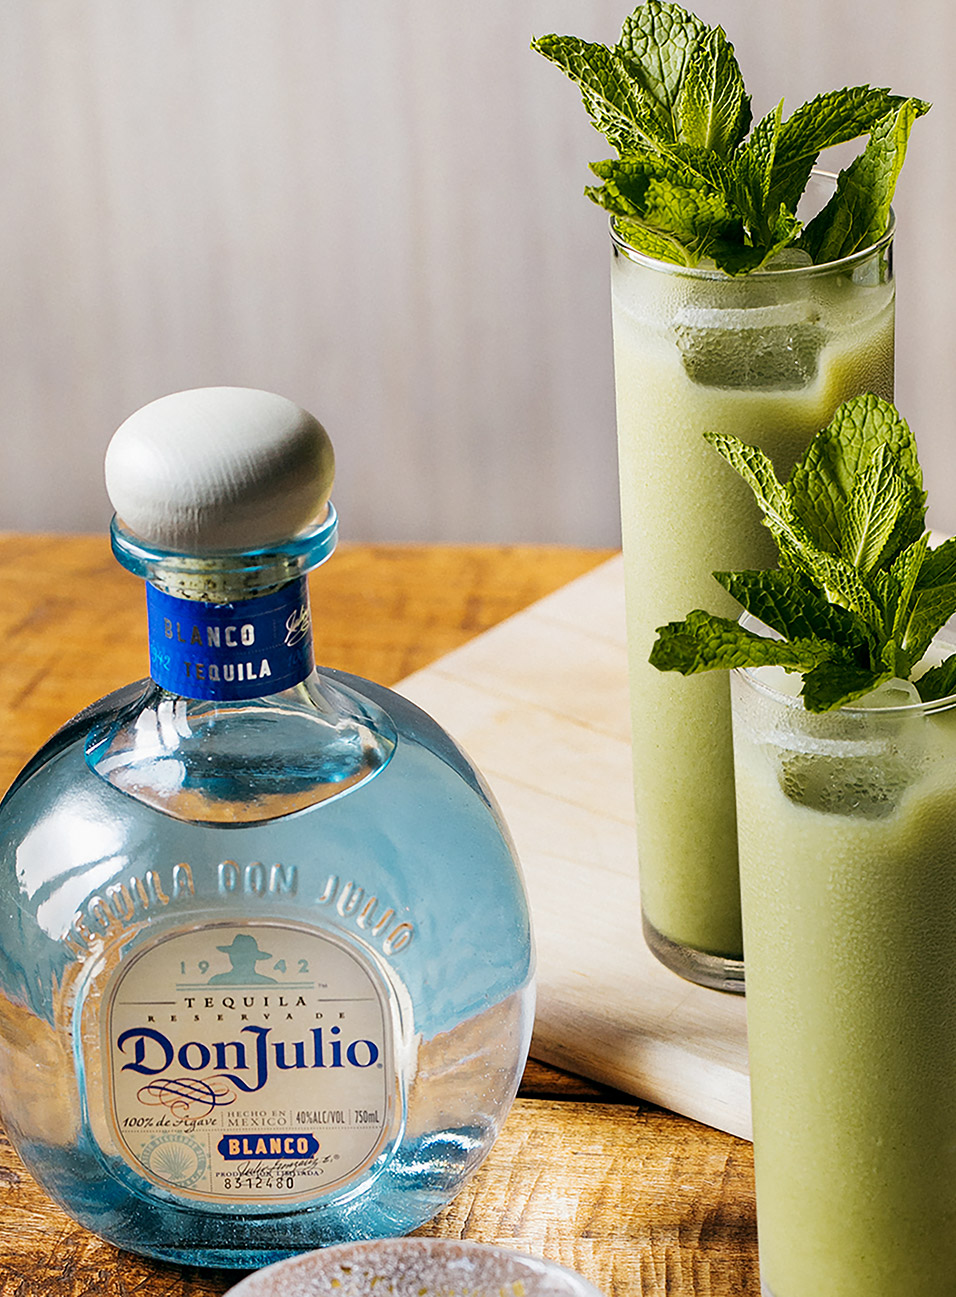 Matcha Green Tea Cocktail made with Don Julio Blanco Tequila